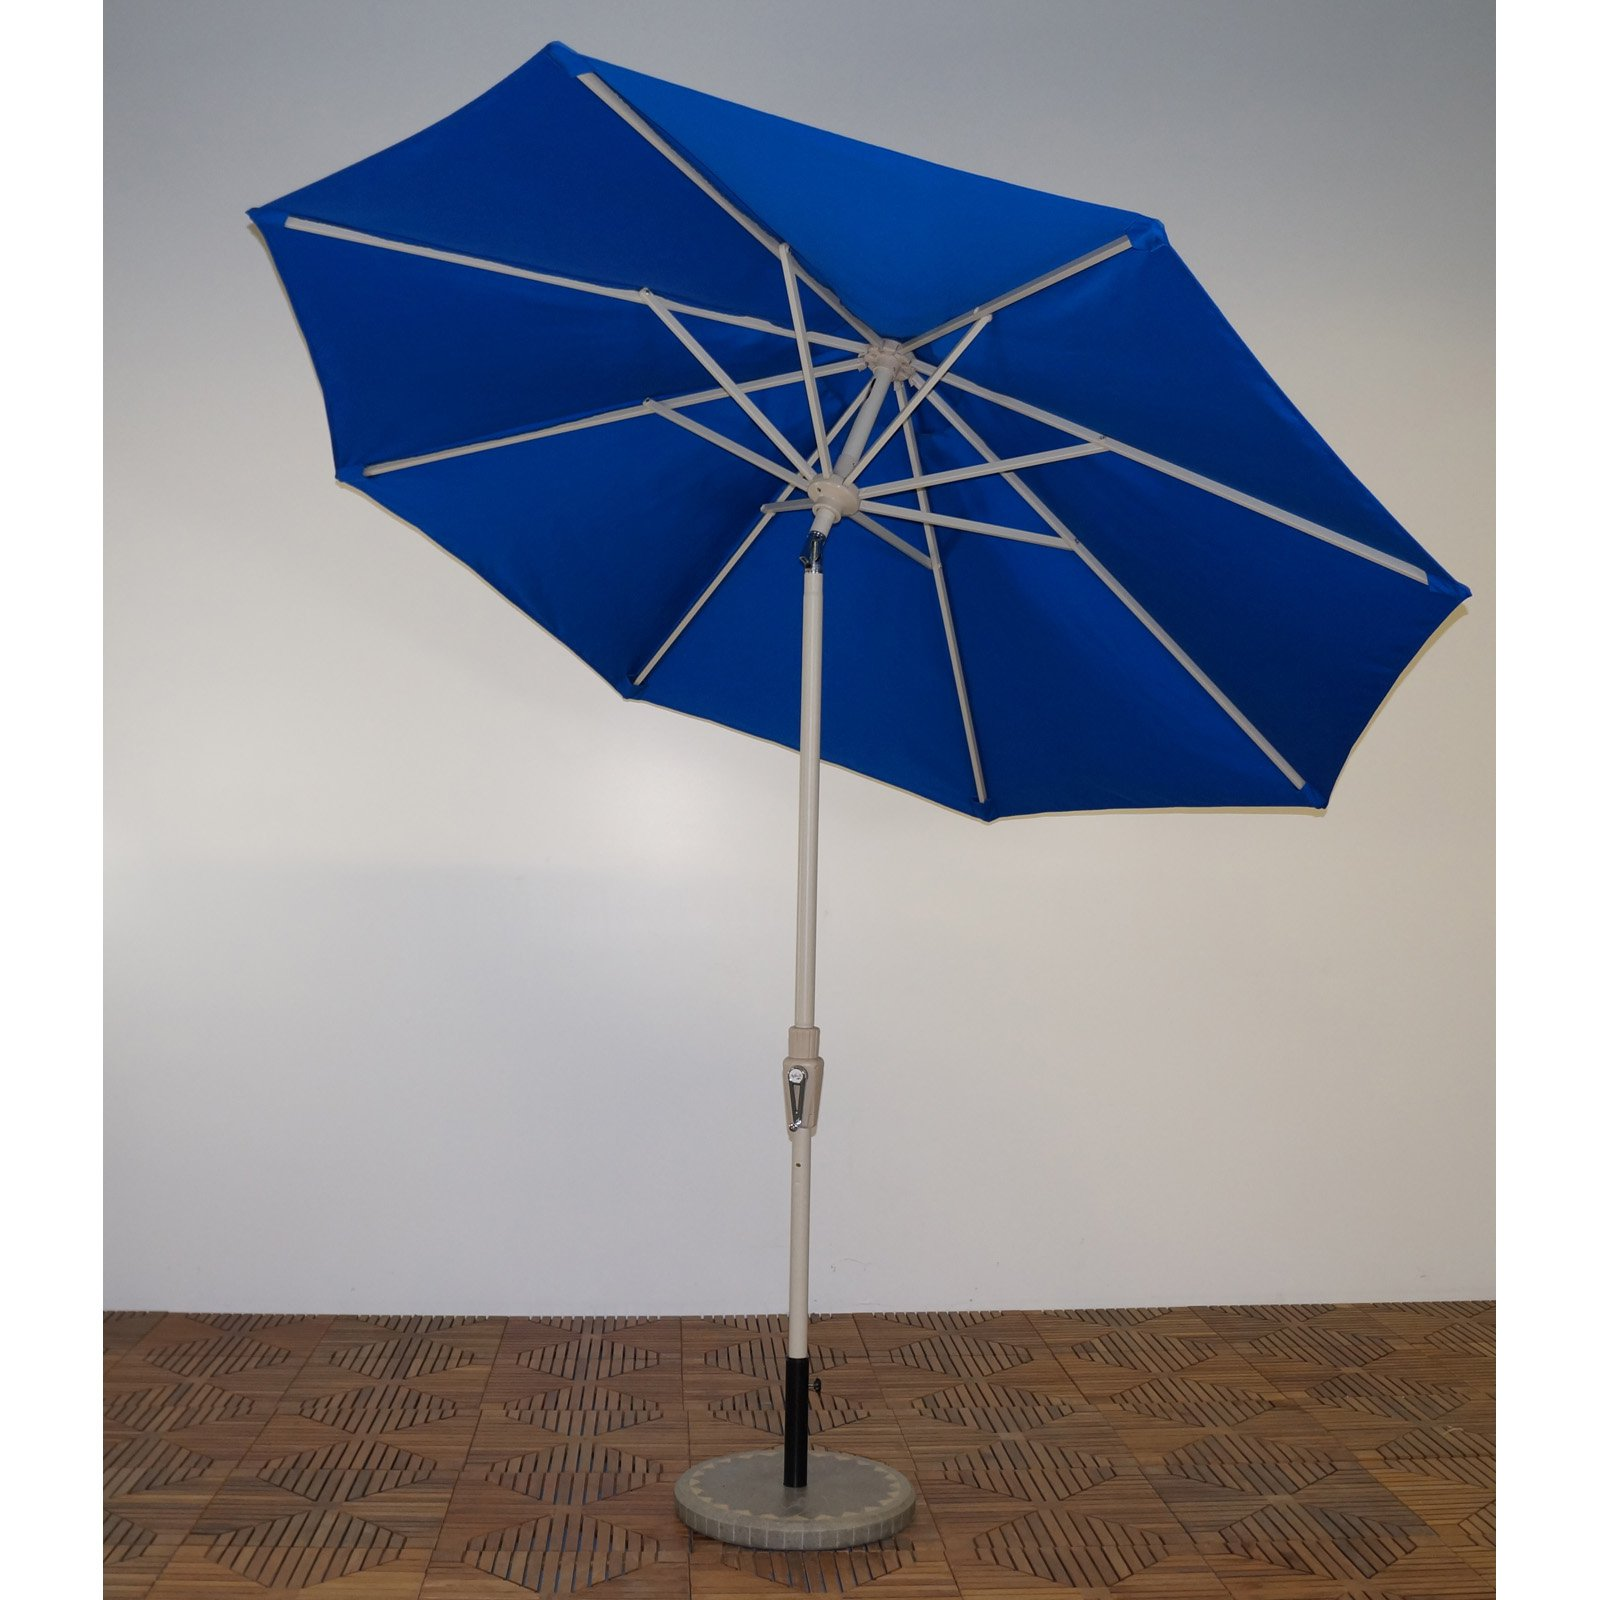 Shade Trends 9 ft. Premium Market Umbrella